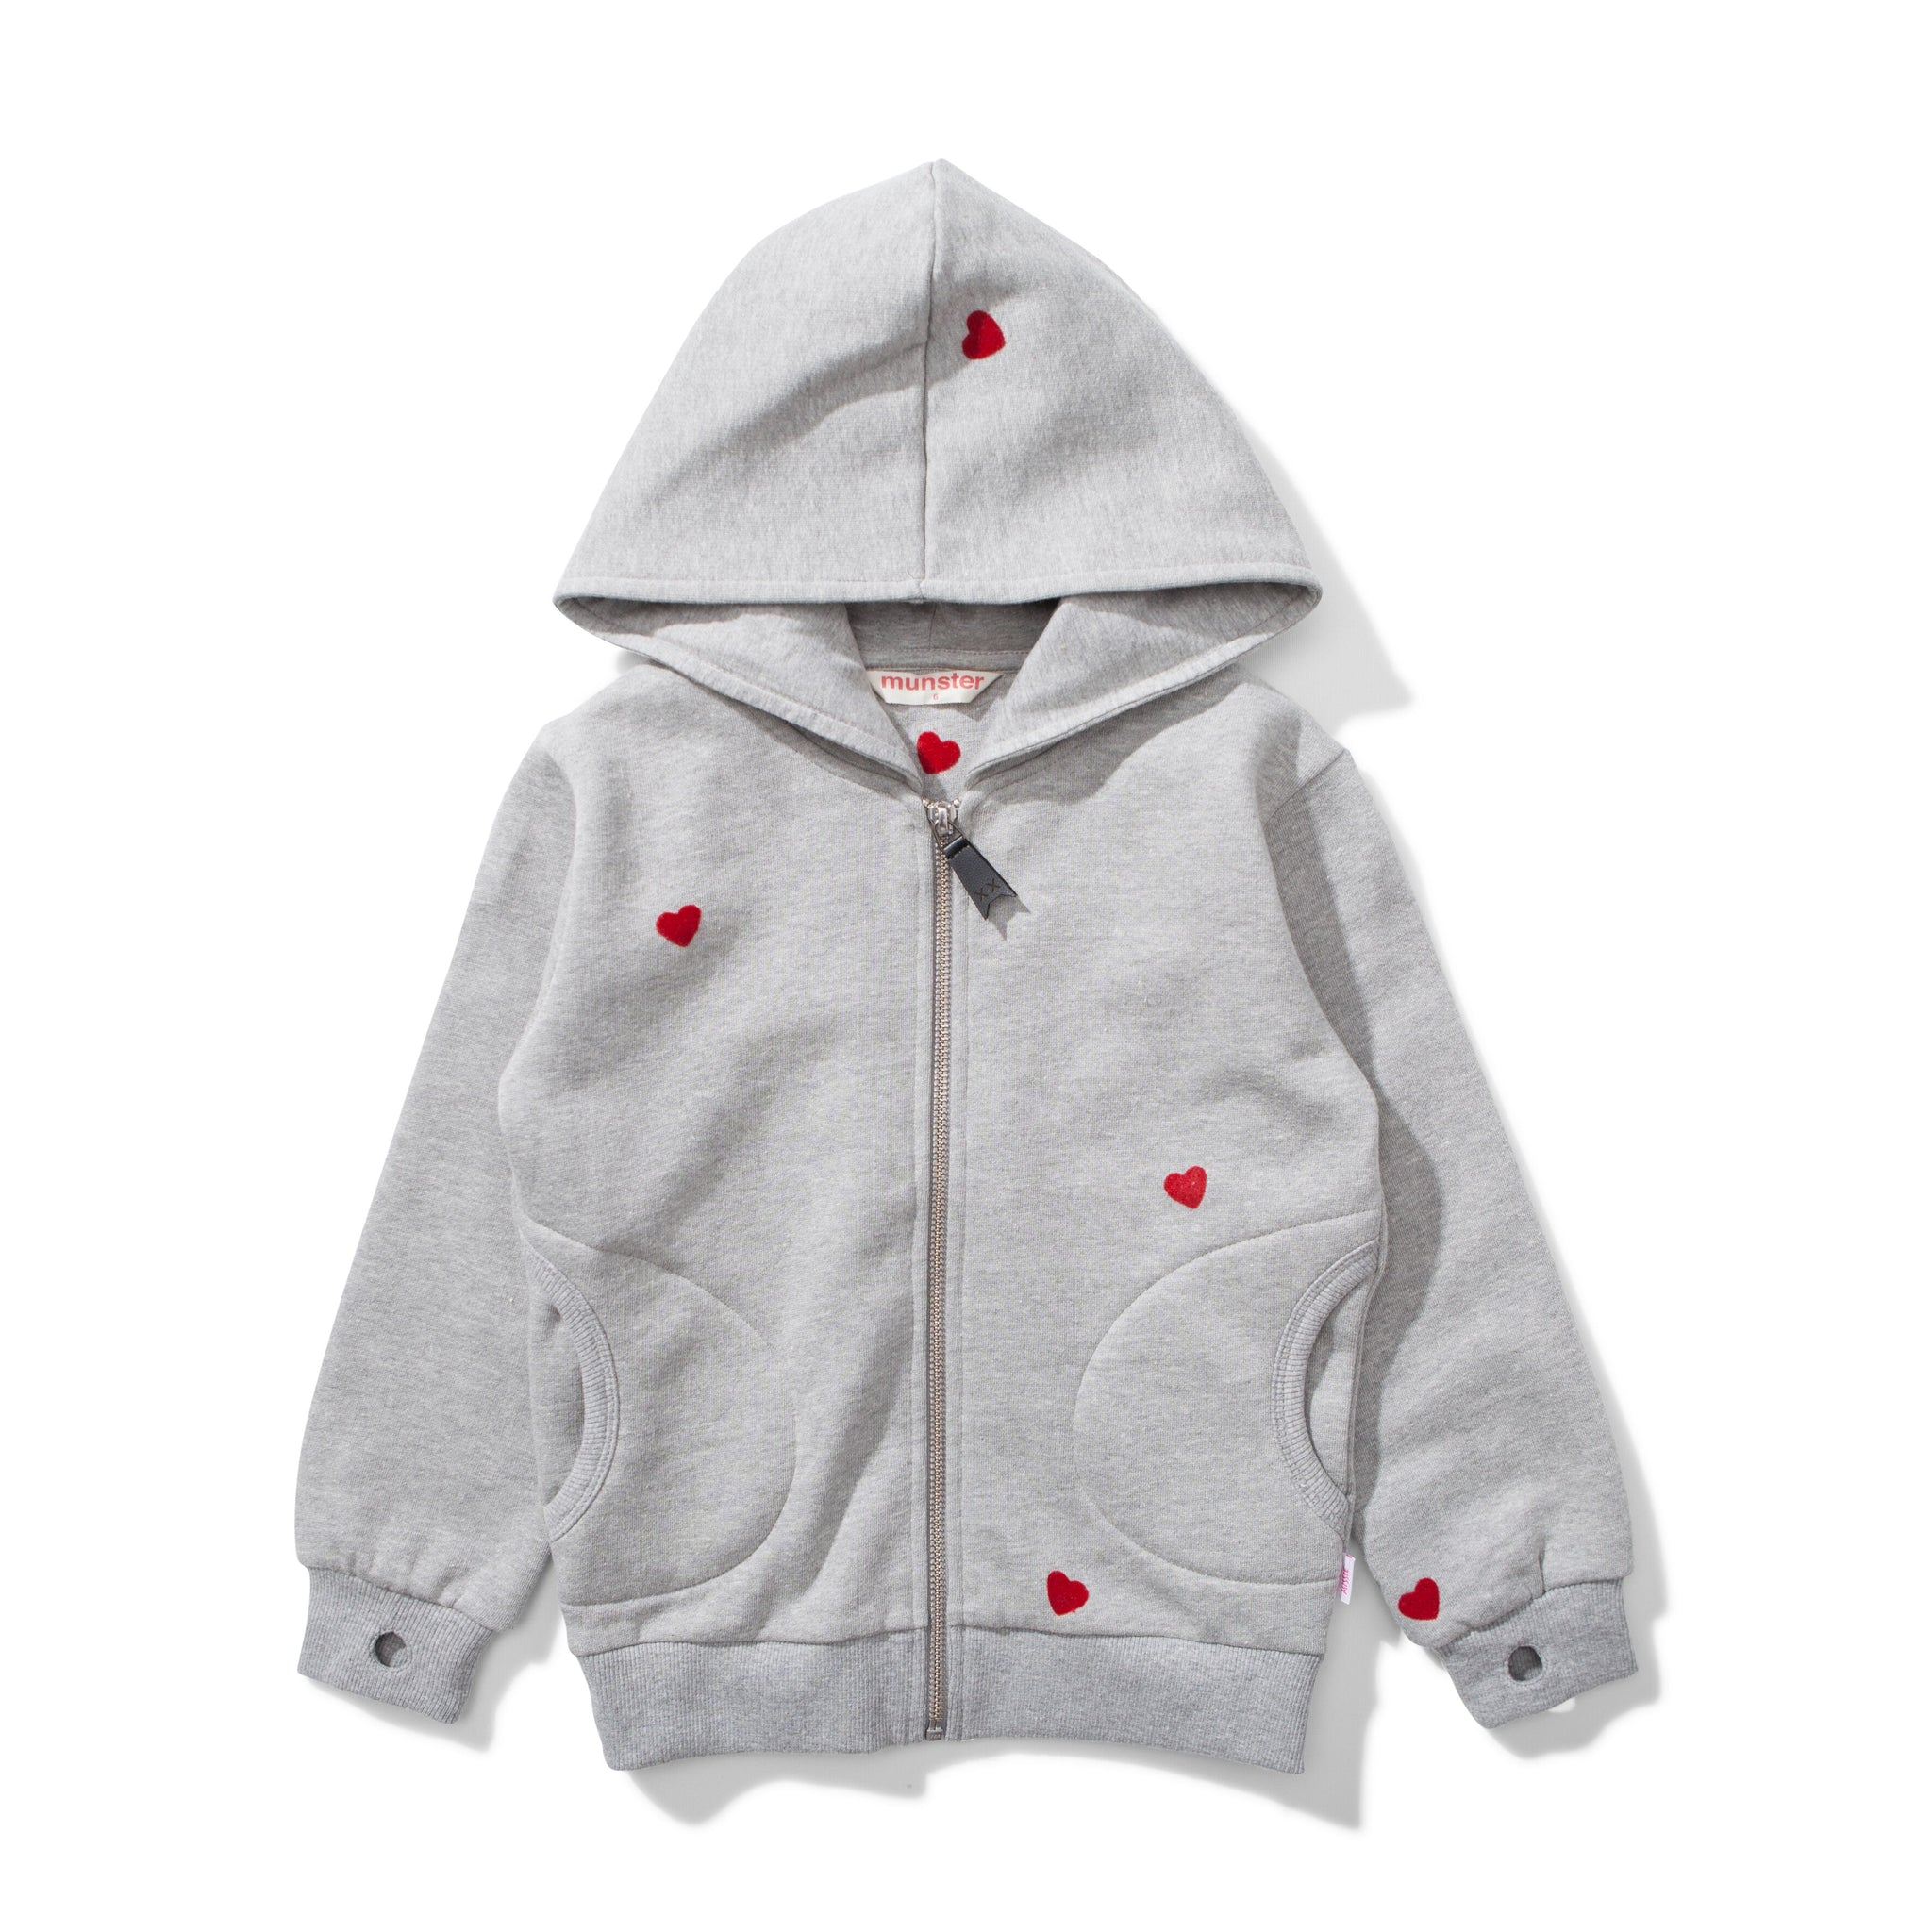 MUNSTER KIDS Girls Zip Up Hooded Sweatshirt with Hearts